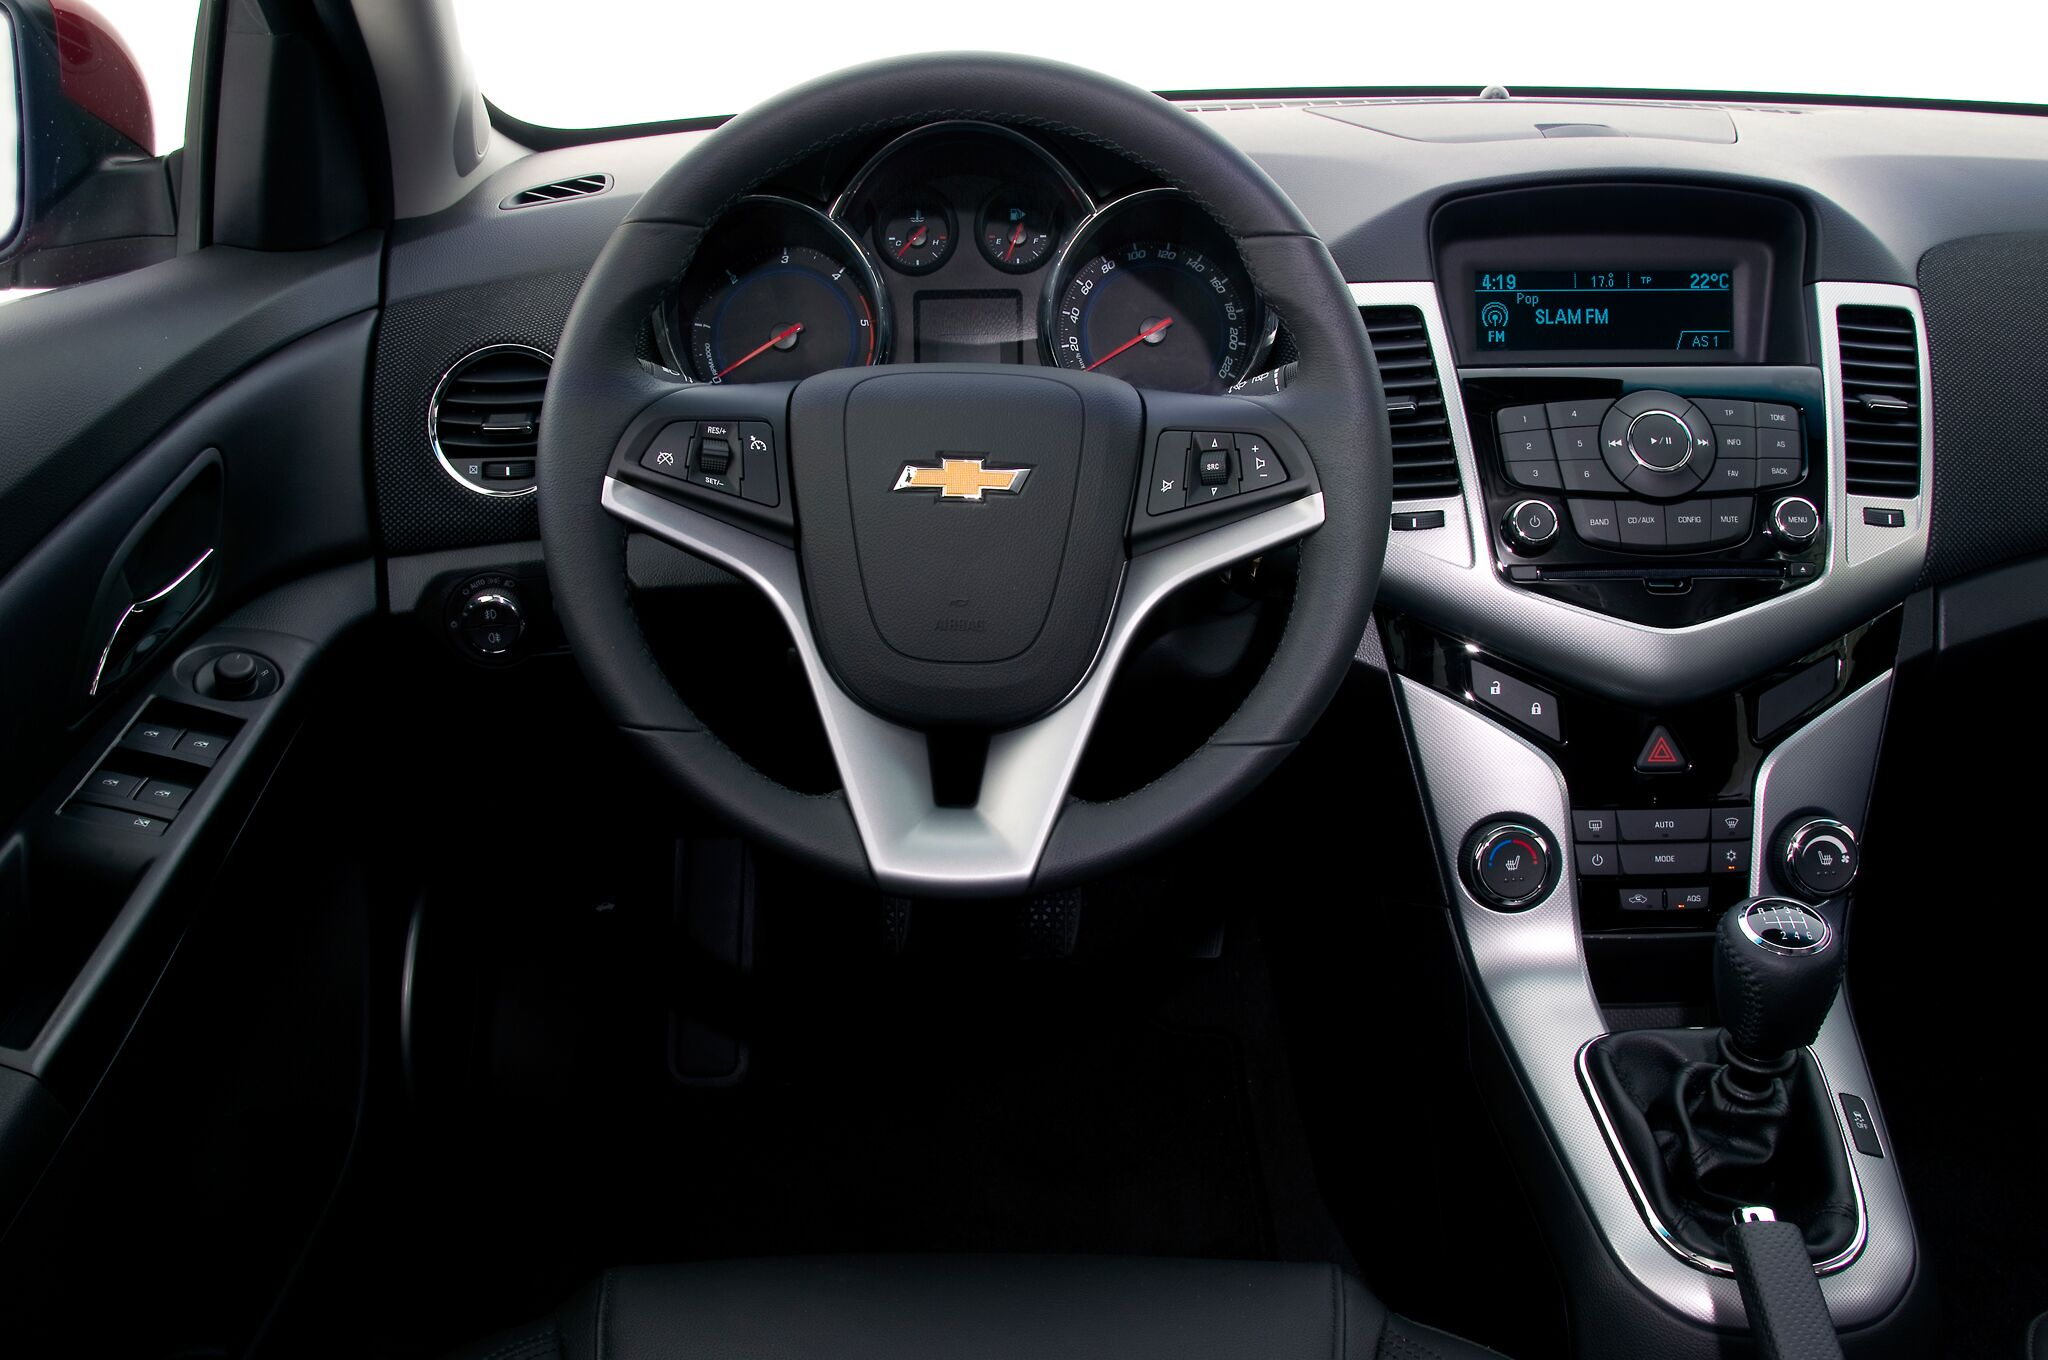 2016 chevy cruze miami fl. Black Bedroom Furniture Sets. Home Design Ideas